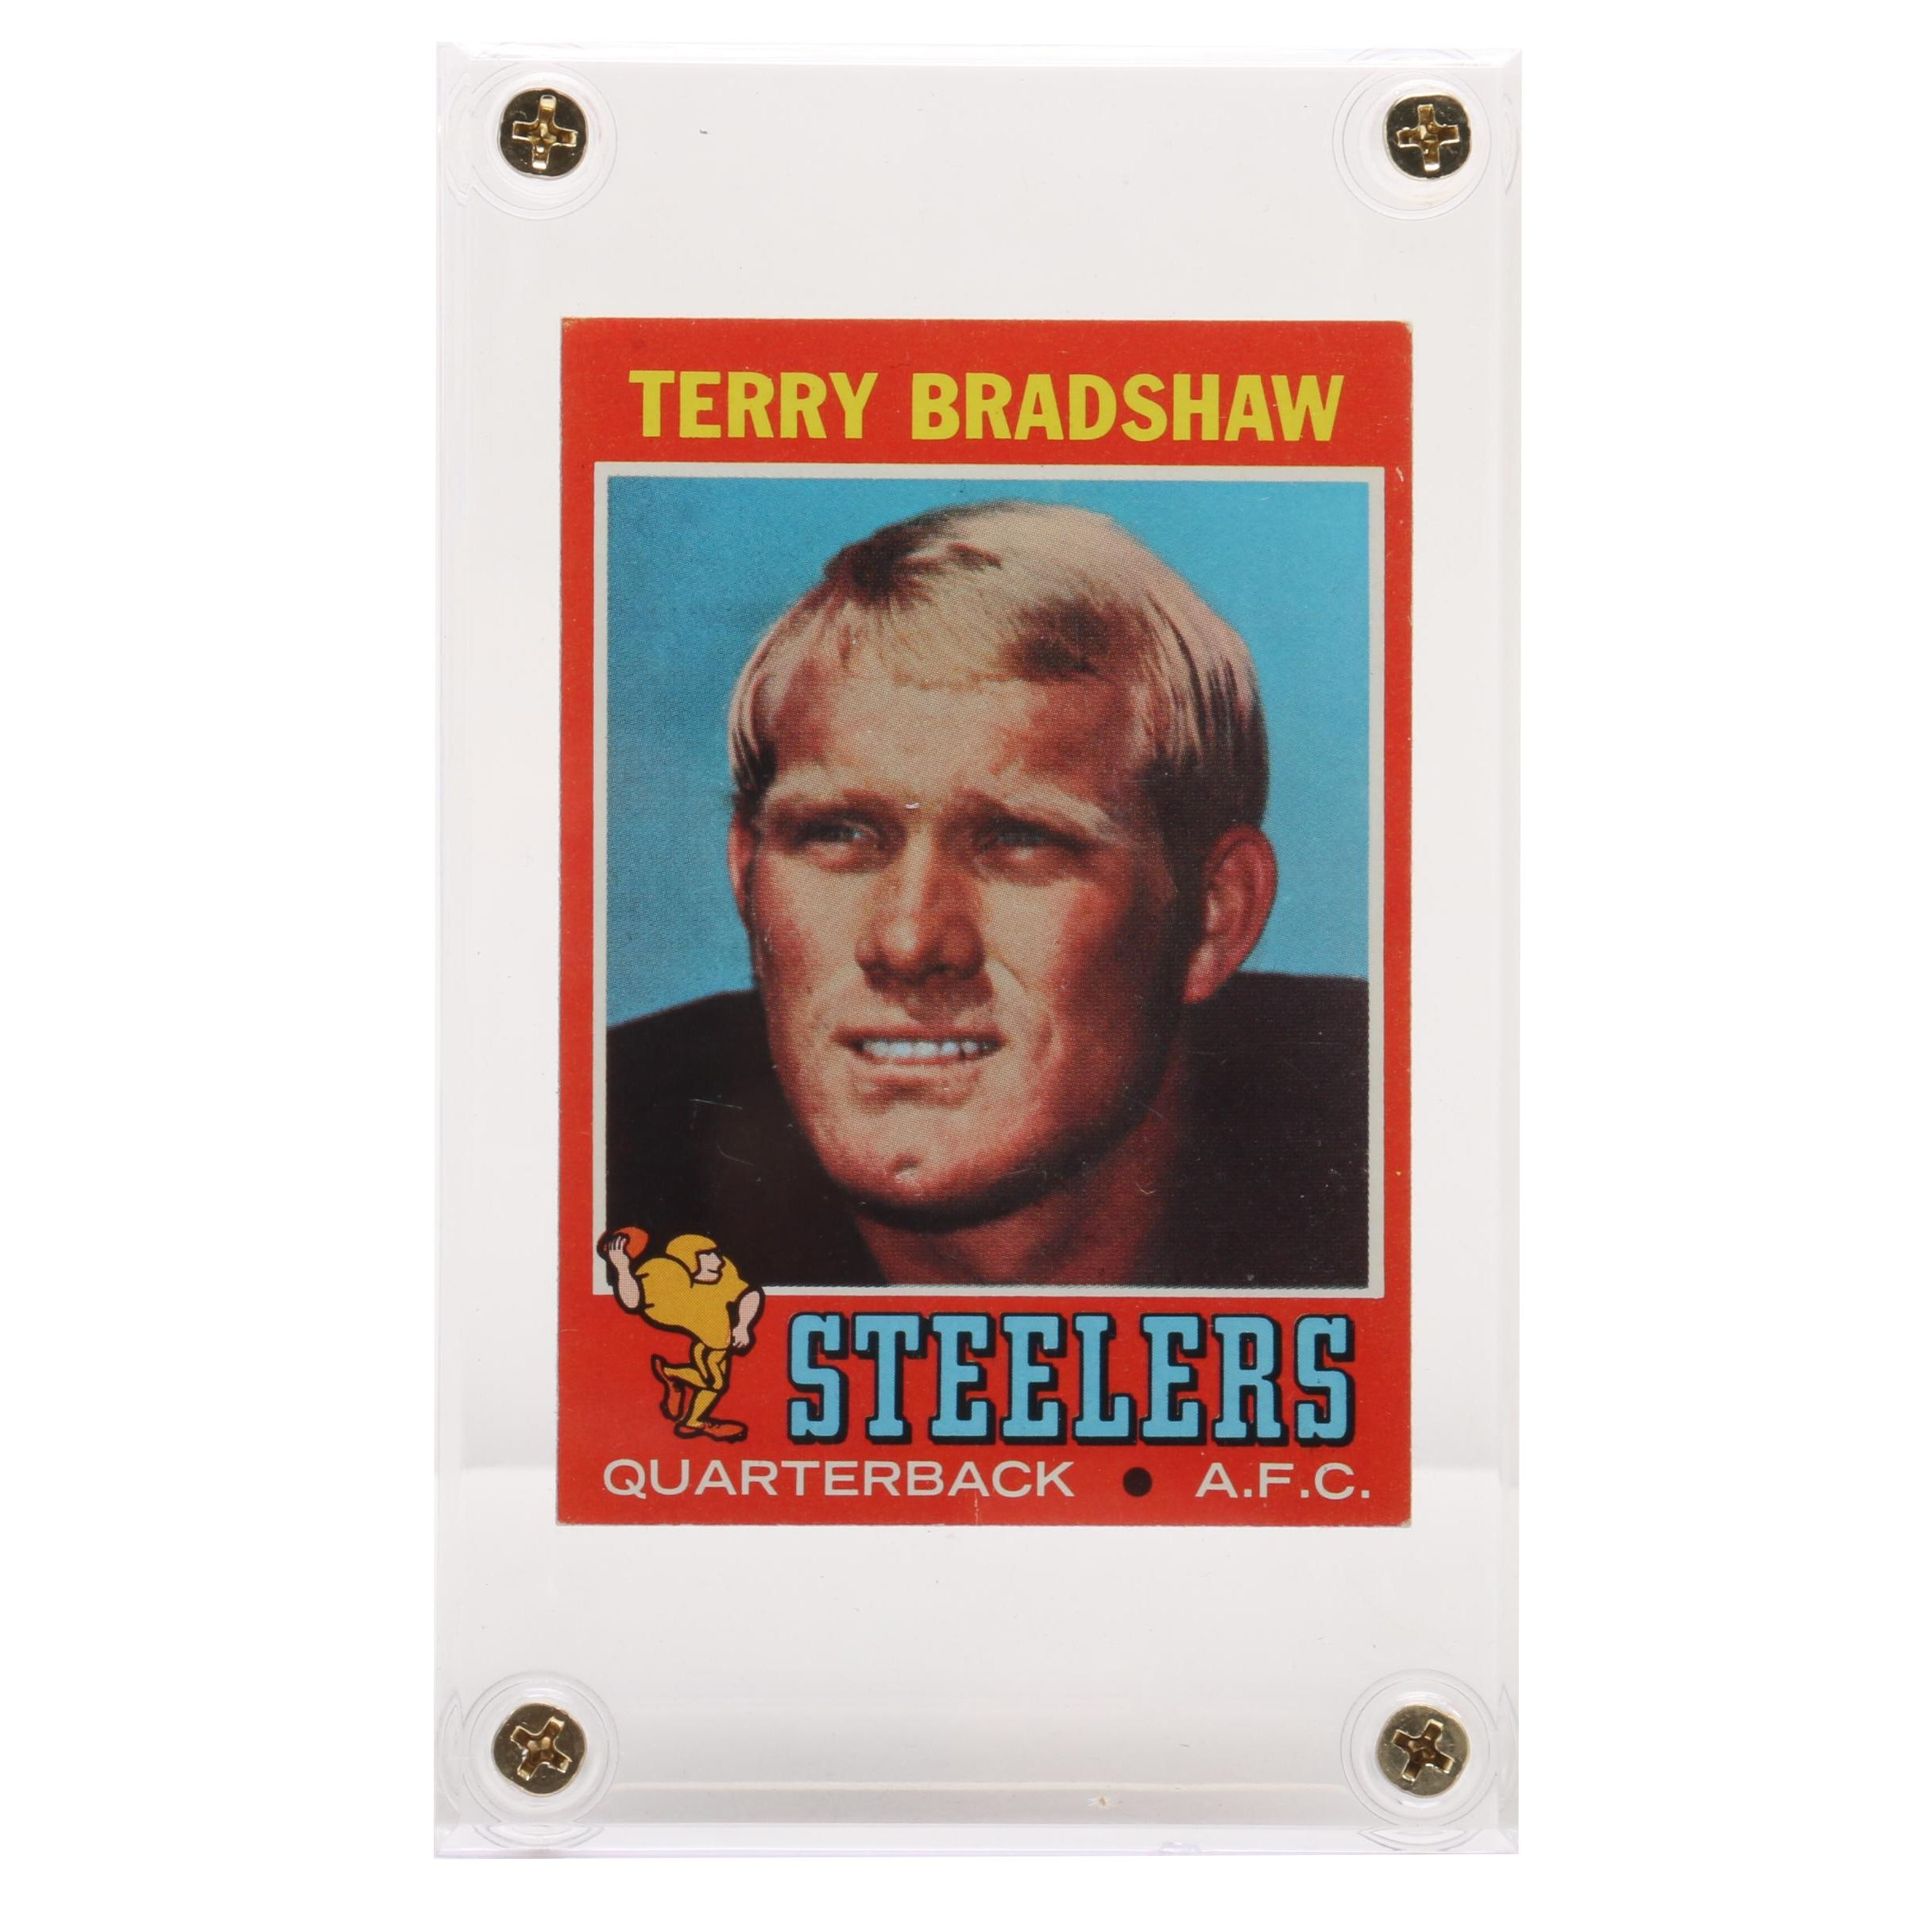 1971 Terry Bradshaw Pittsburgh Steelers Topps Rookie Football Card